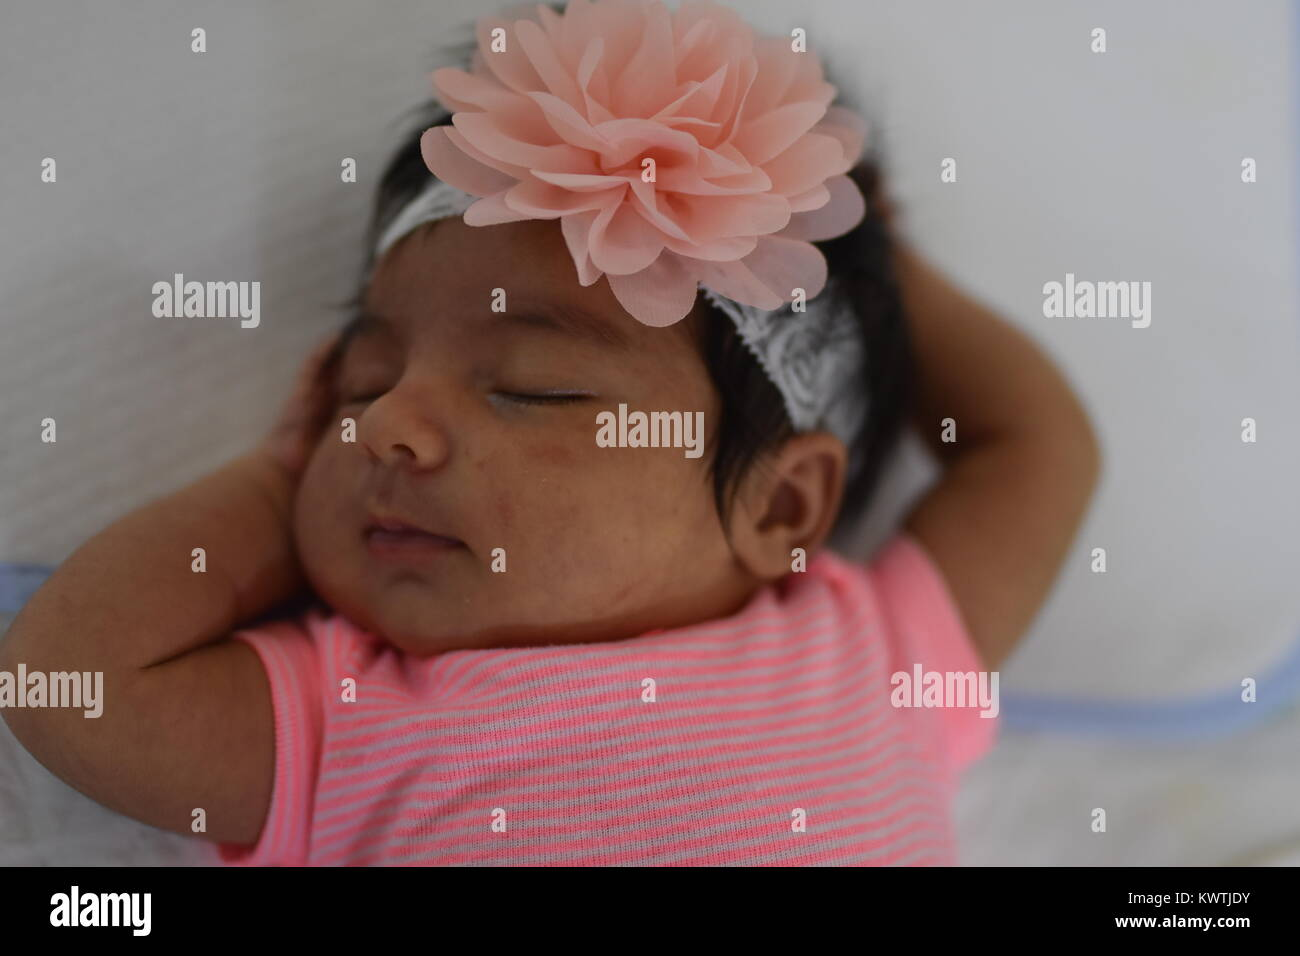 Newborn baby girl in pink sleeps peacefully on her back with arms around her head - Stock Image